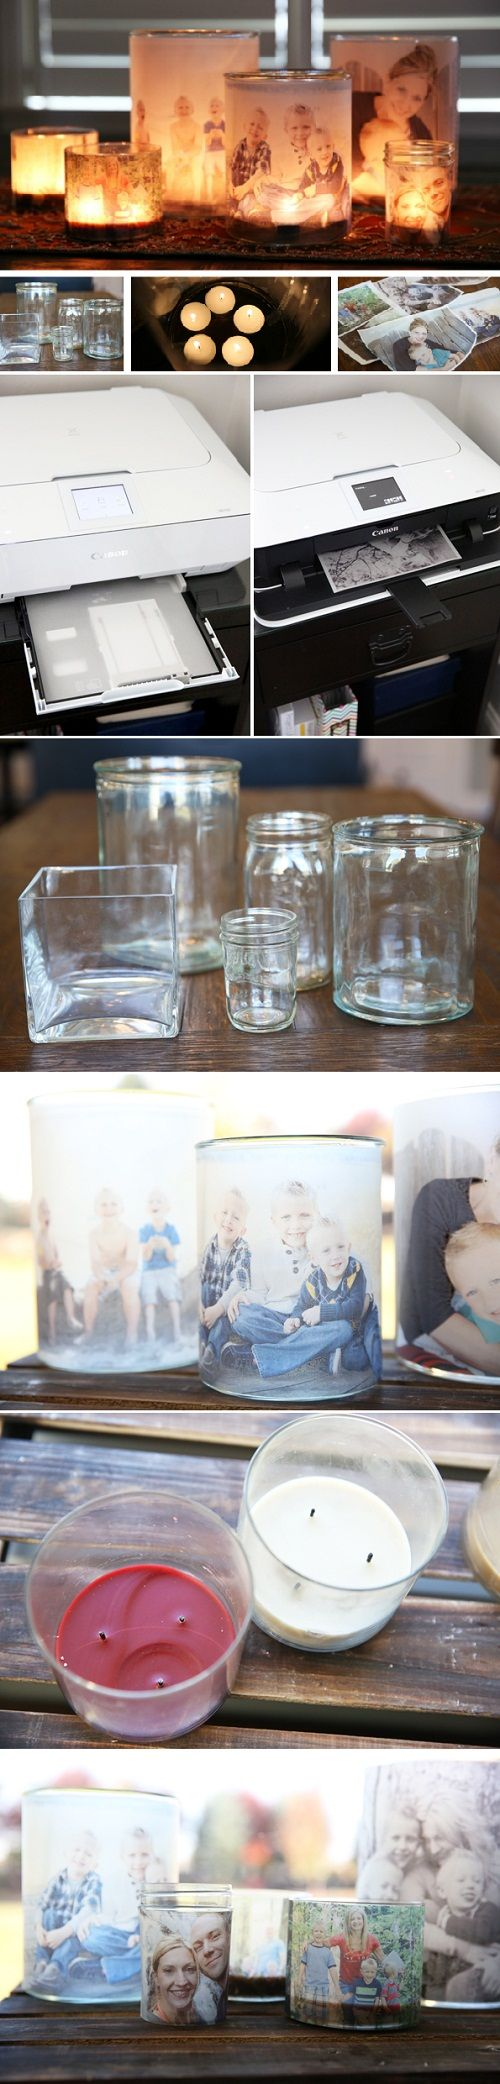 DIY Glowing Photo Luminaries #pin_it #diy #sustentabilidade @mundodascasas See more here: www.mundodascasas.com.br